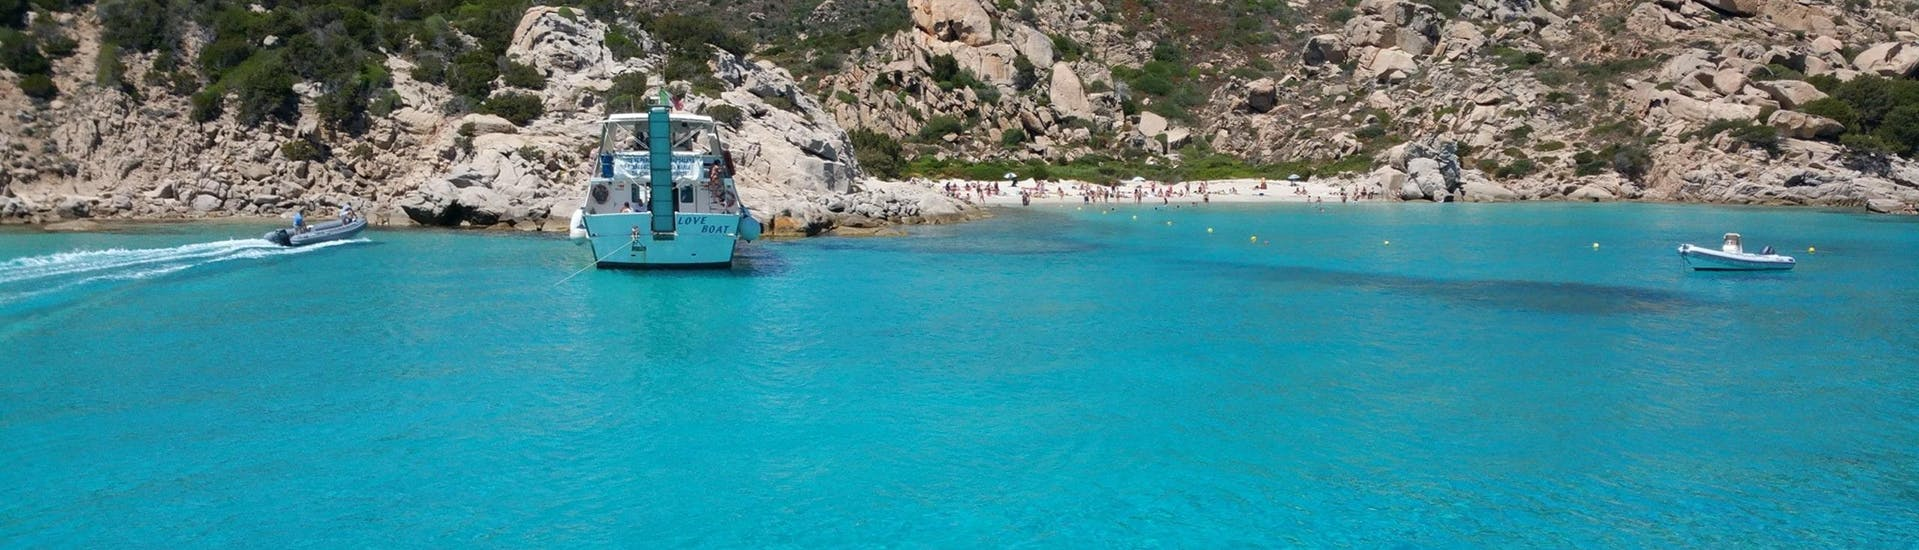 The Lady Luna 2 Palau boat has anchored in a beautiful bay with turquoise water during the Boat Trip from Palau to La Maddalena Archipelago -Low Season.